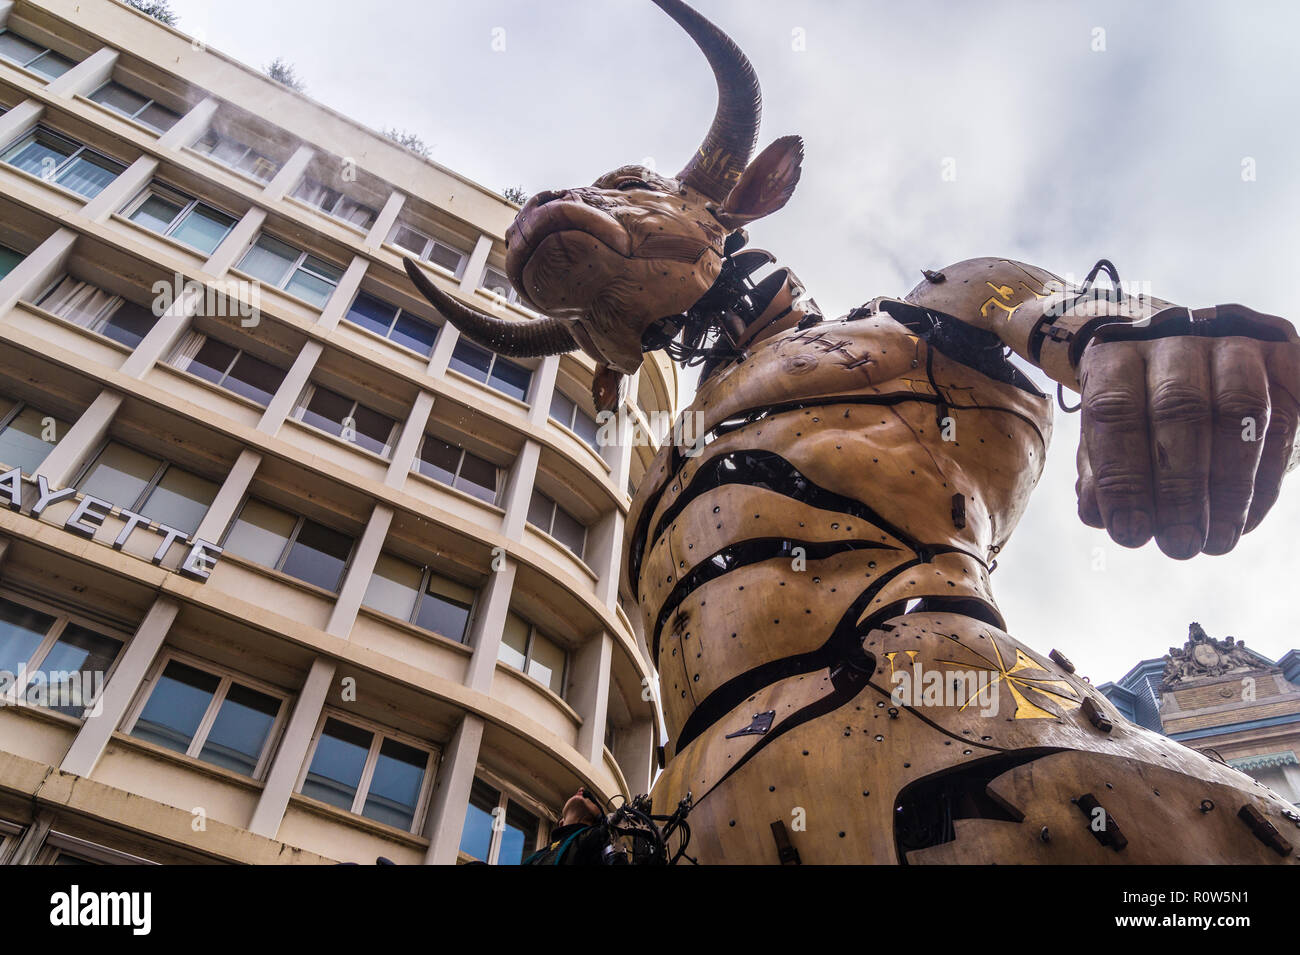 astrion-the-mechanical-minotaur-during-steampunk-show-le-gardien-du-temple-by-franois-delarozire-la-machine-toulouse-occitanie-france-R0W5N1.jpg